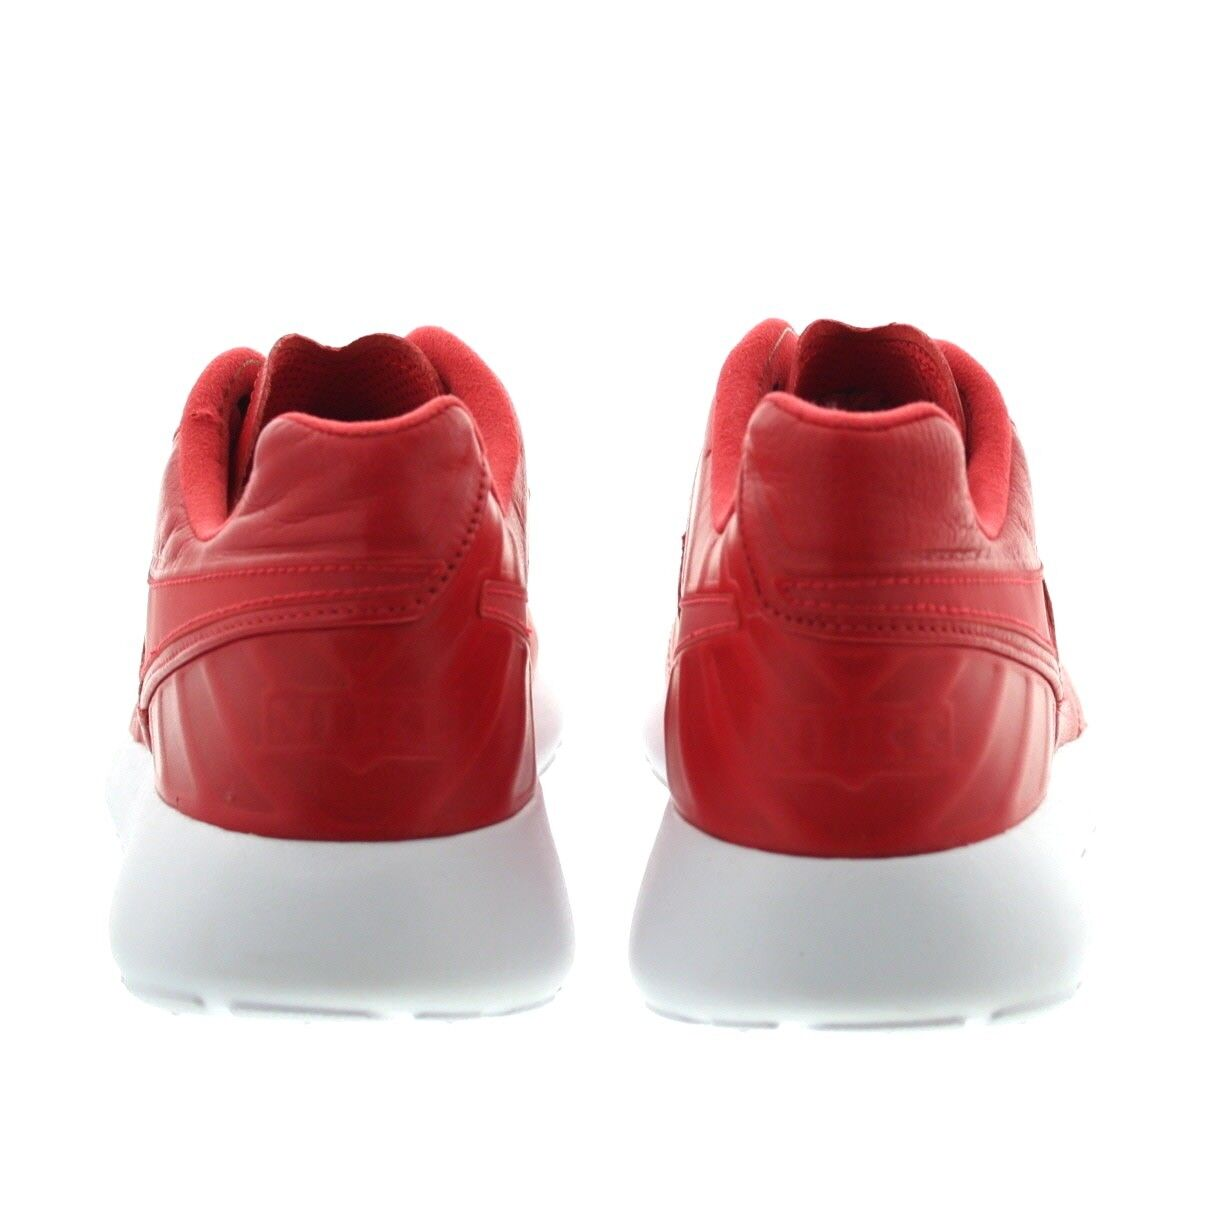 Nike 853535 Mens Roshe Tiempo VI QS QS QS Leather Low Top Running shoes Sneakers 4ab33e